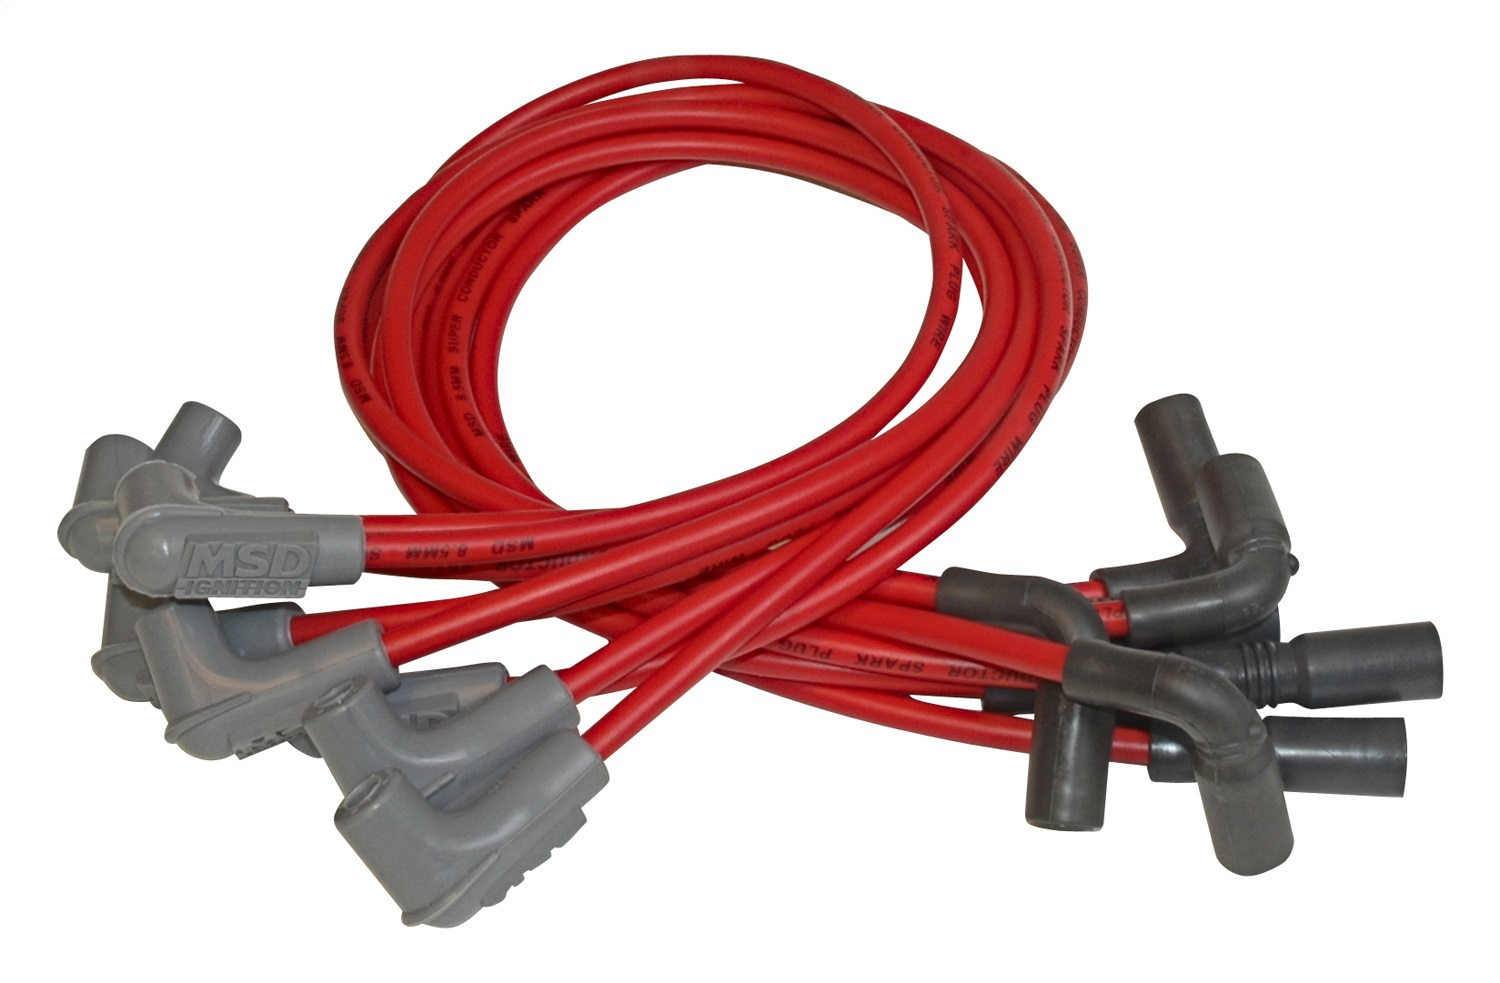 Msd Ignition 32159 Spark Plug Wires 1994 Lt1